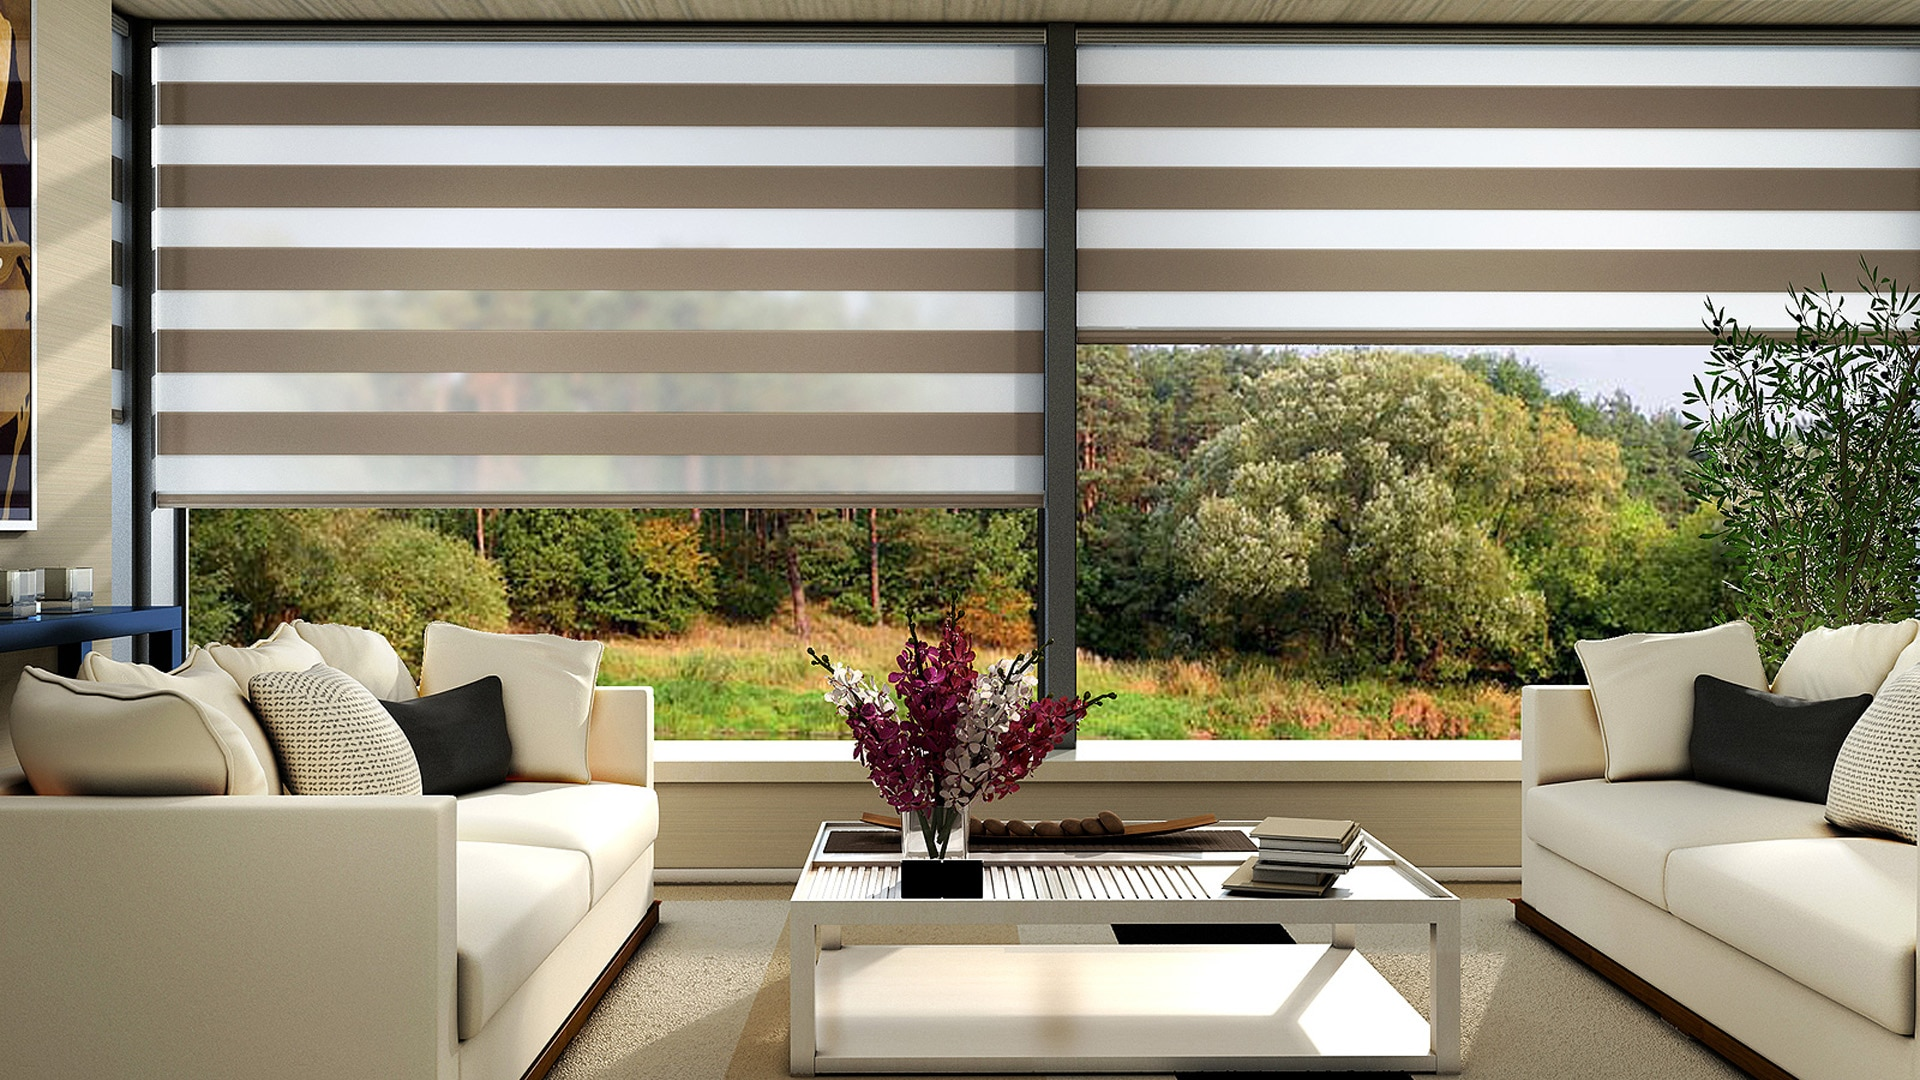 Zebra Blinds in Delhi & NCR  Blinds are nowadays not just for hiding or partitioning. These are also now used as an Item that beautifies your Room Decor. For getting attractive and Designer Blinds, contact us!!  For more details, please visit www.maxblinds.co.in